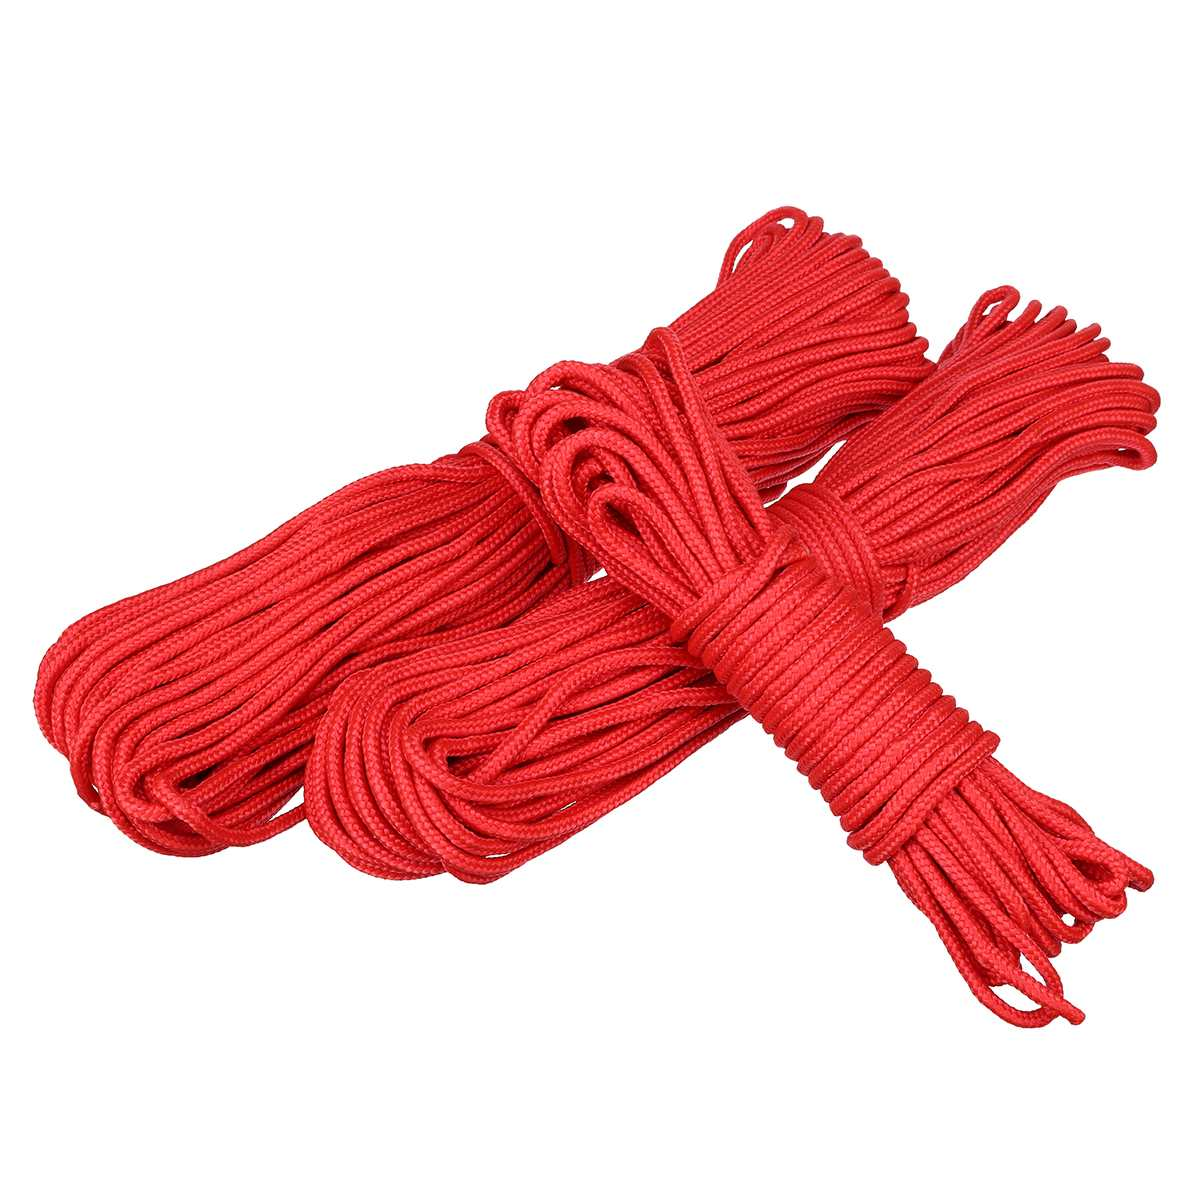 30m red polypropylene rope poly cord 3mm